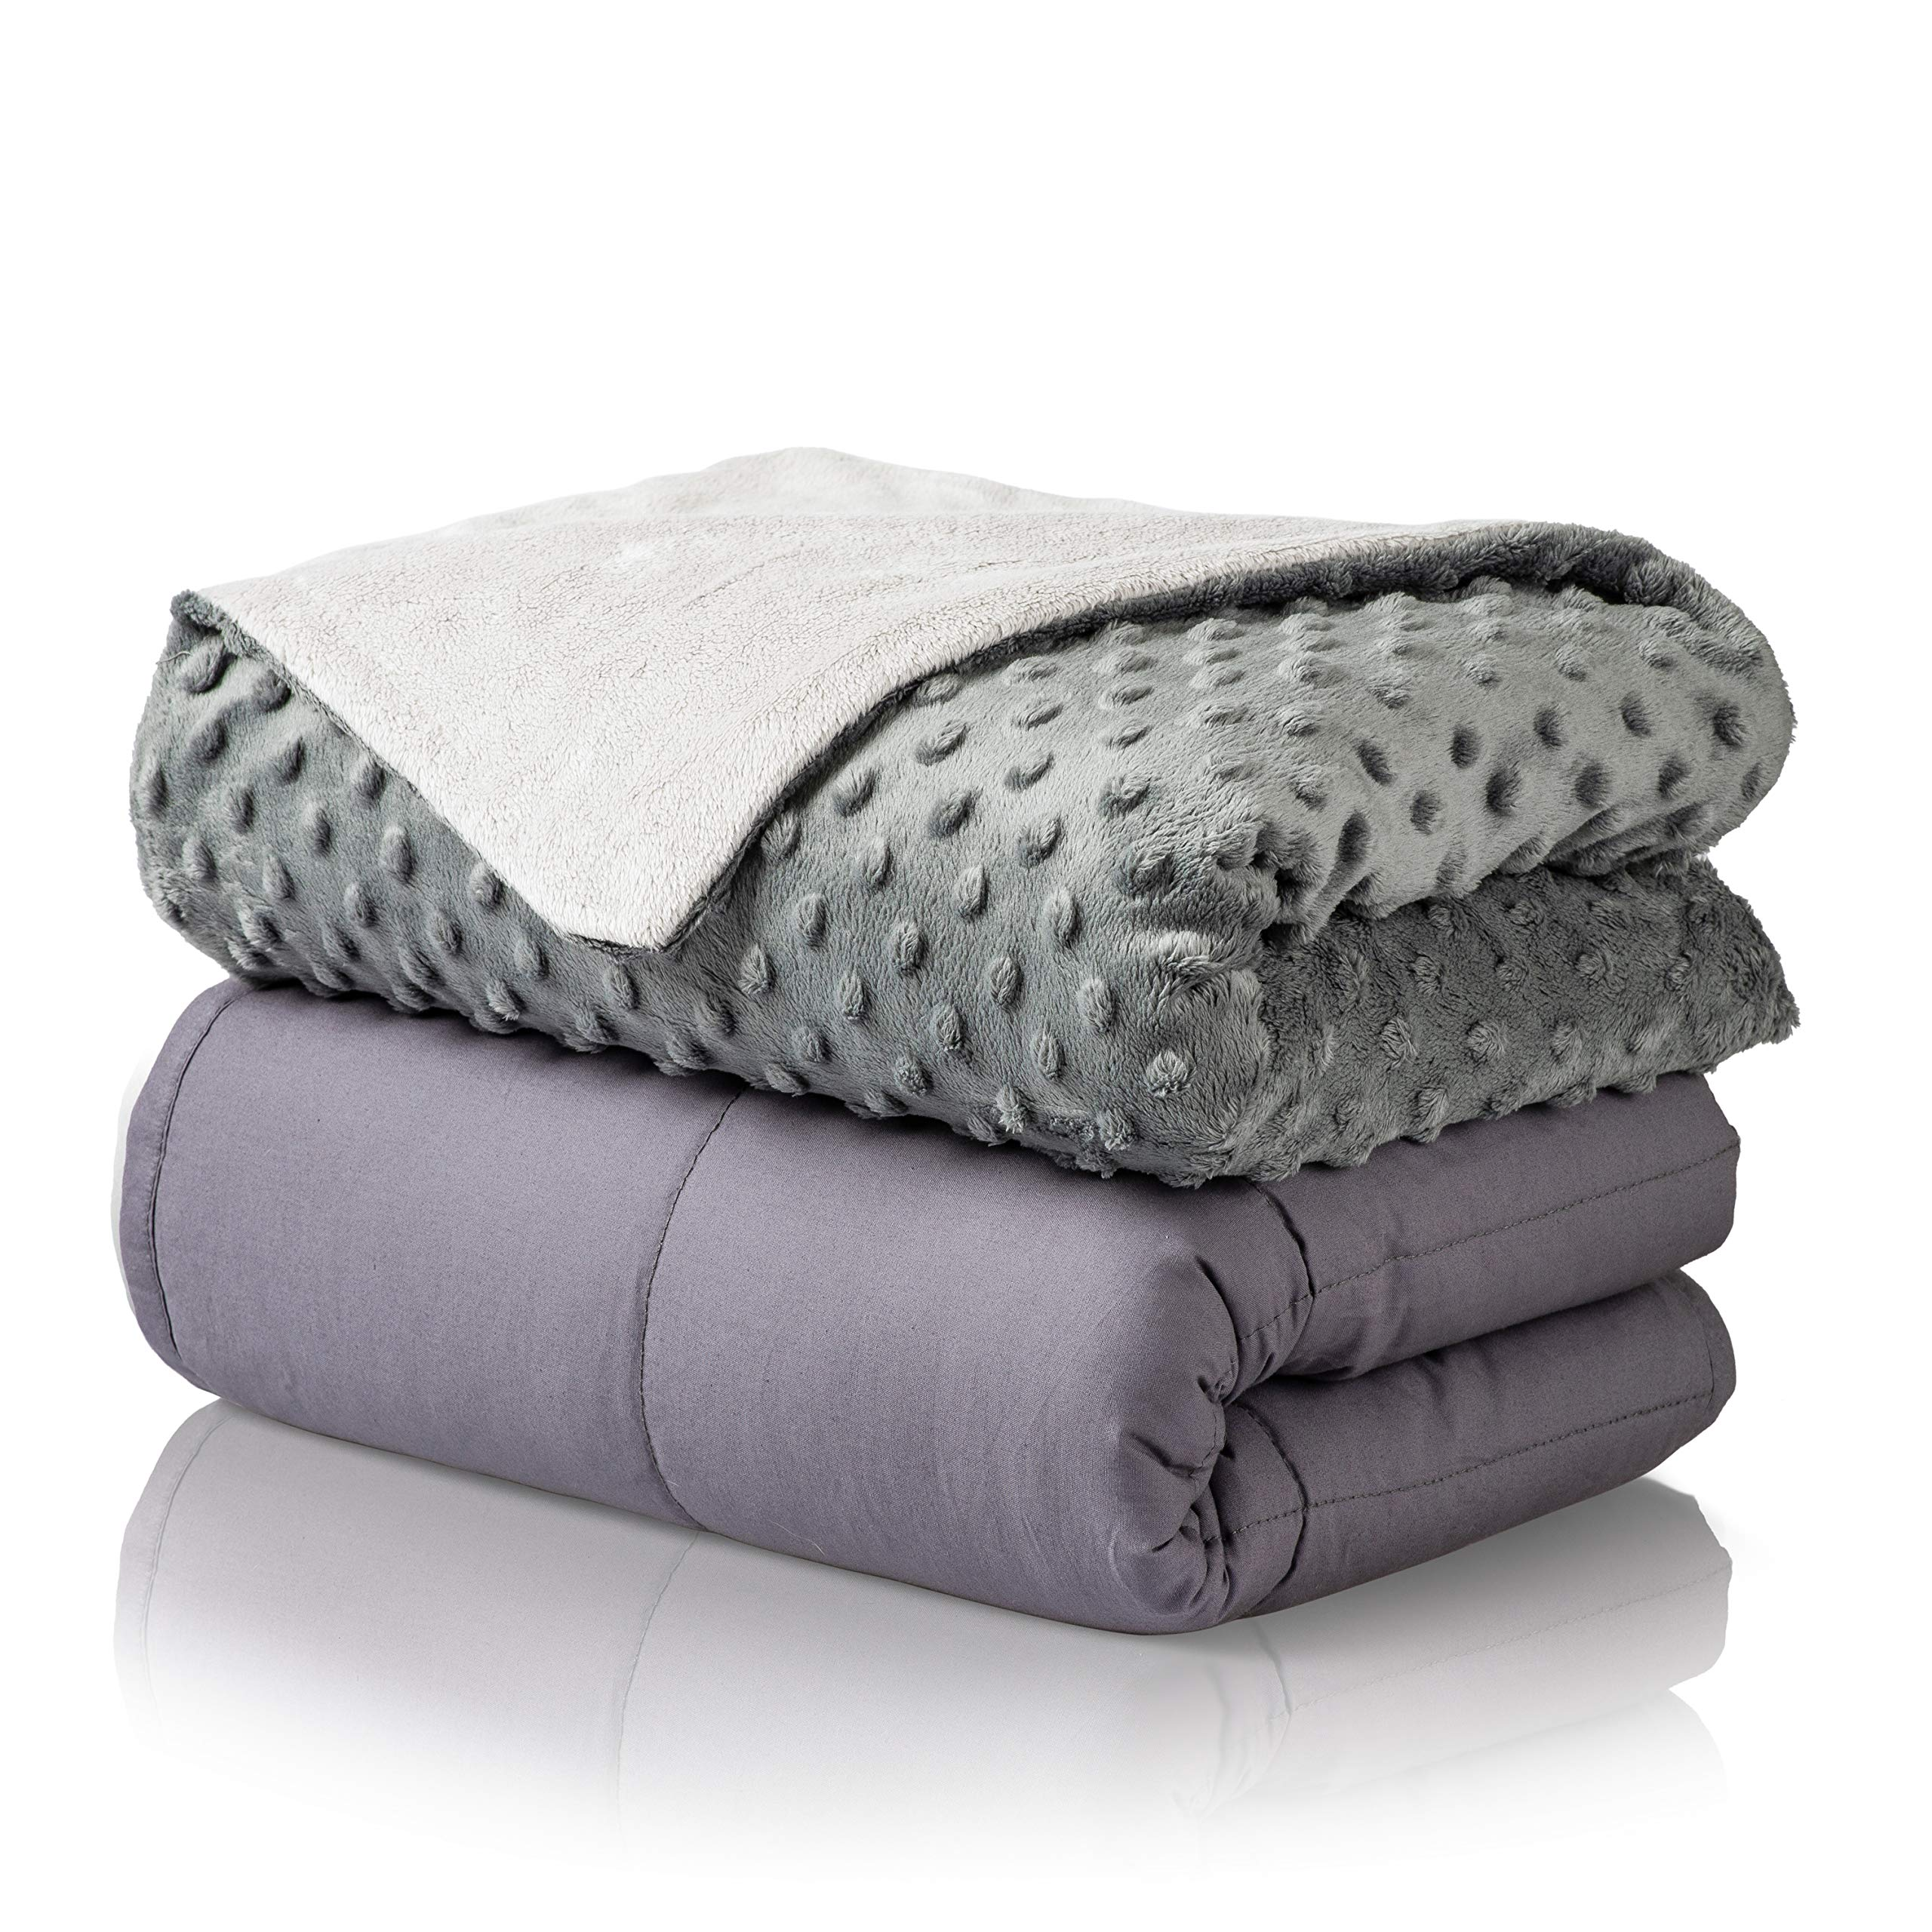 Premium Cotton 15lbs Adult Weighted Blanket Set with Removable Minky Cover   48''x72'' Twin Size   Breathable & Washable